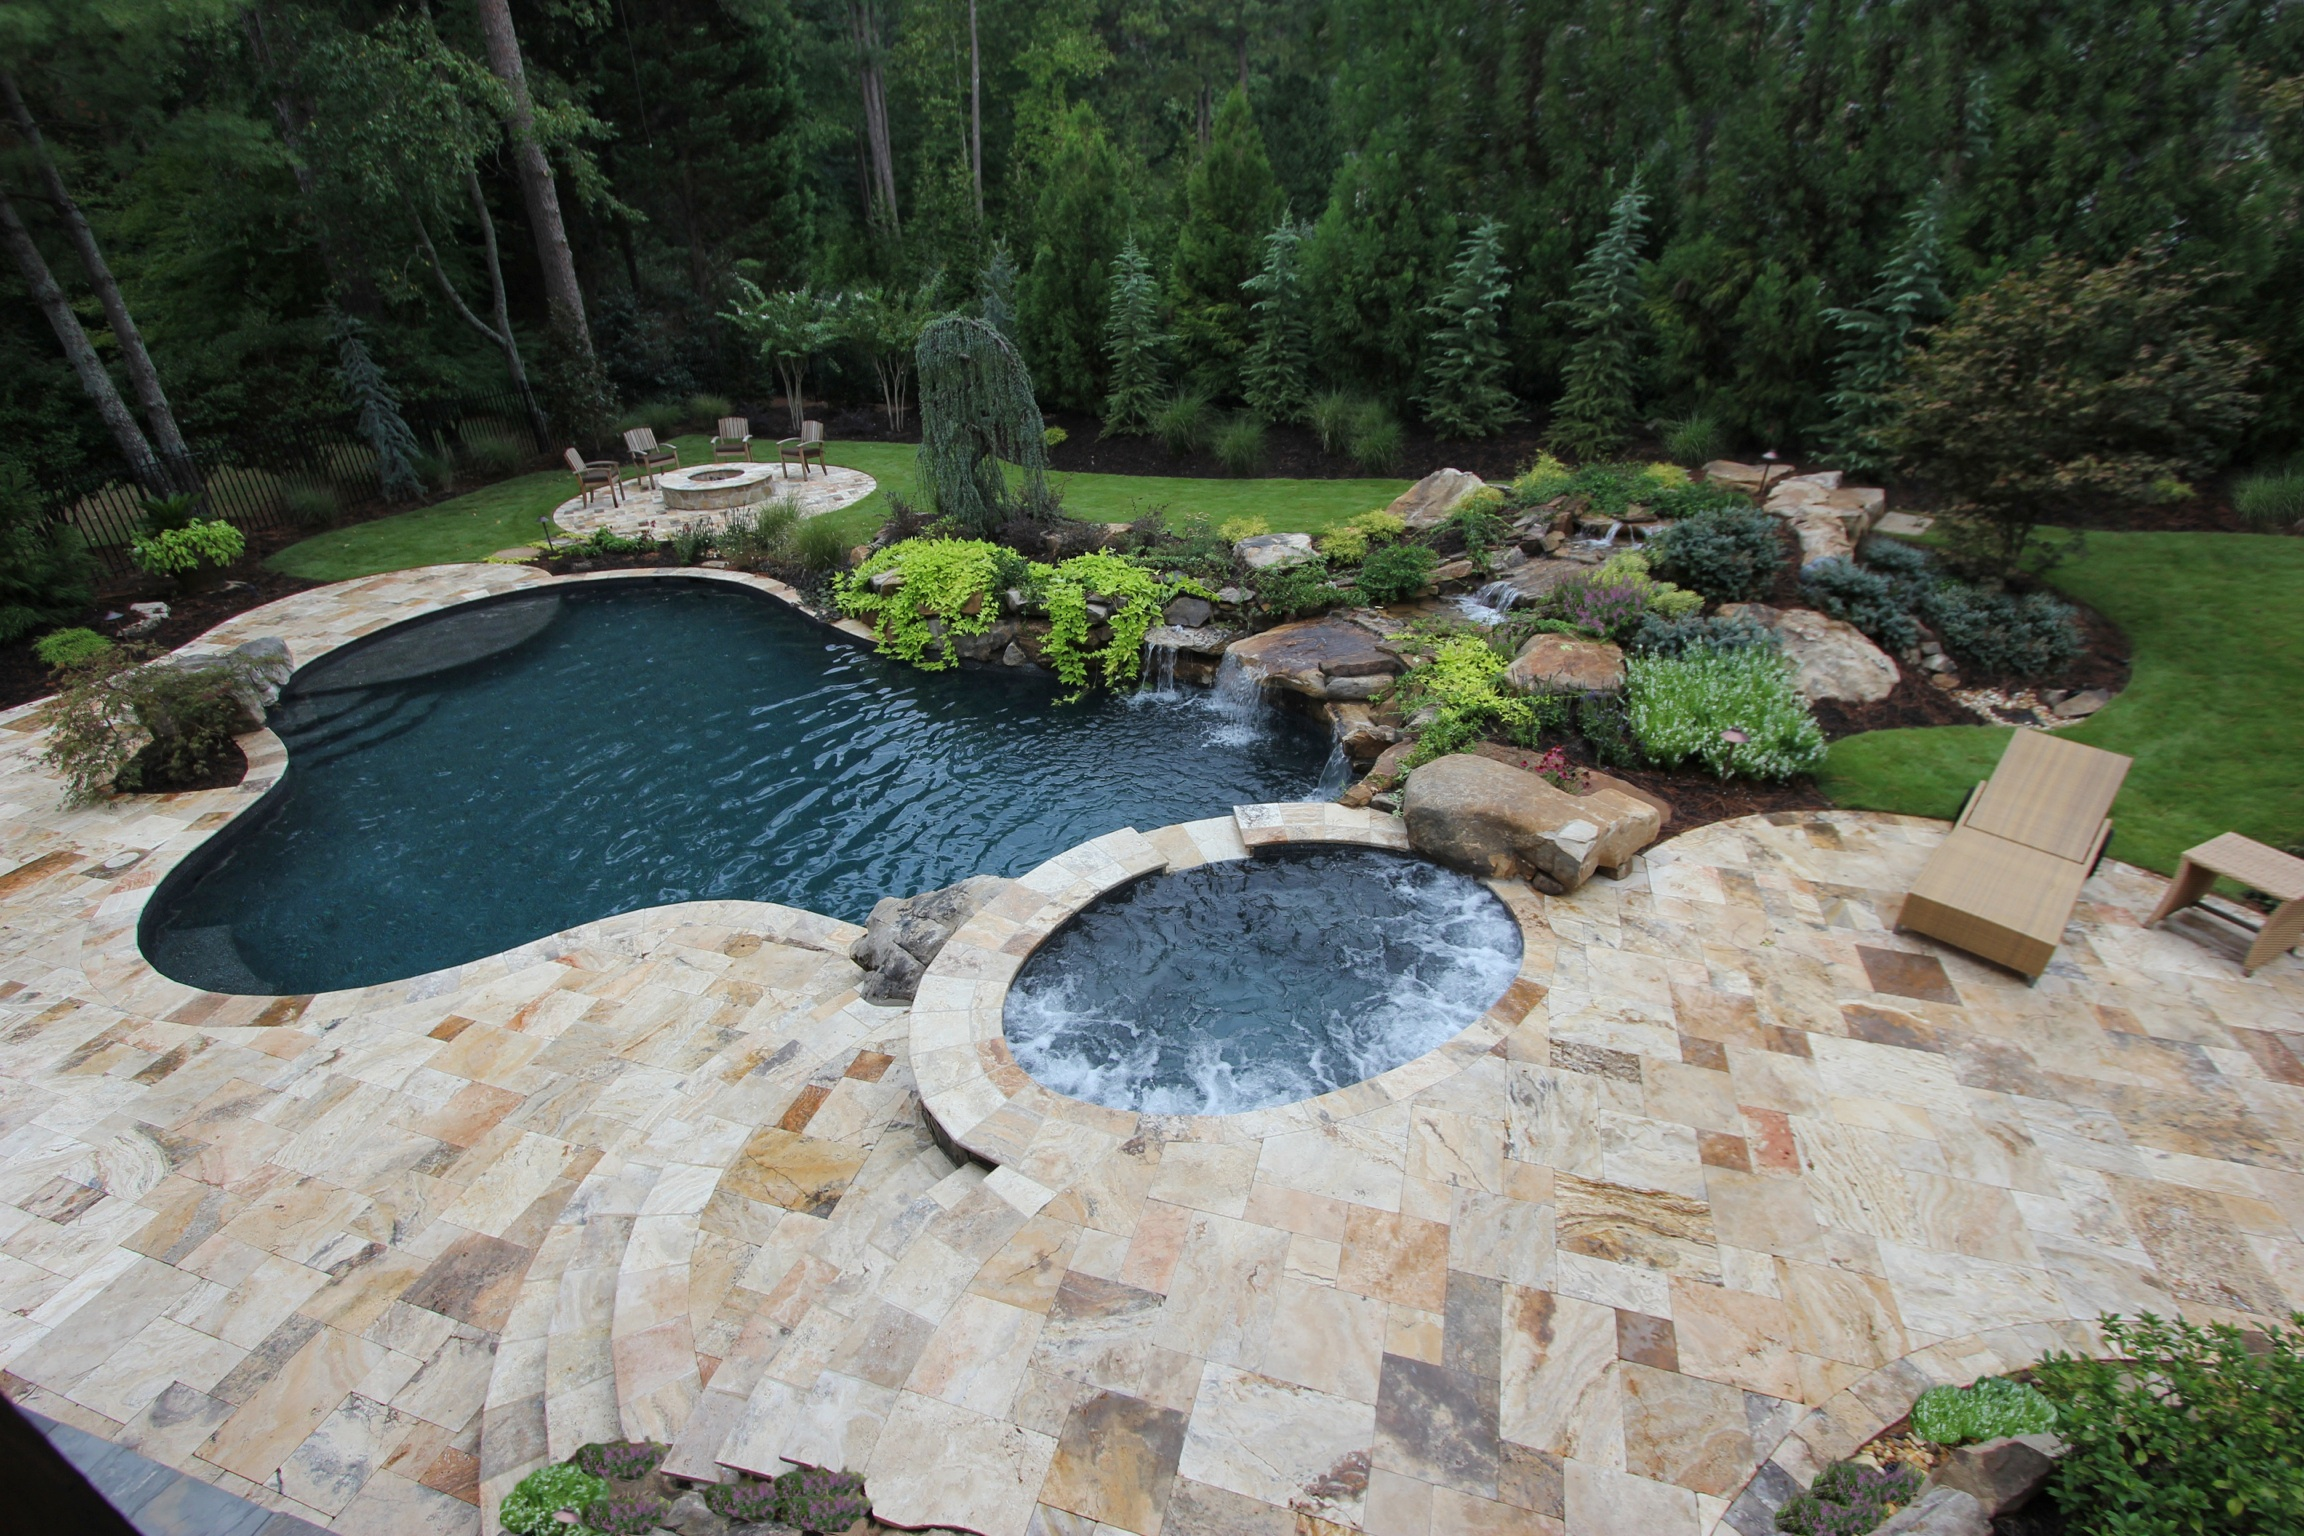 Travertine Pool Deck Travertine Pool Deck  Travertine Pavers For Pools Deck